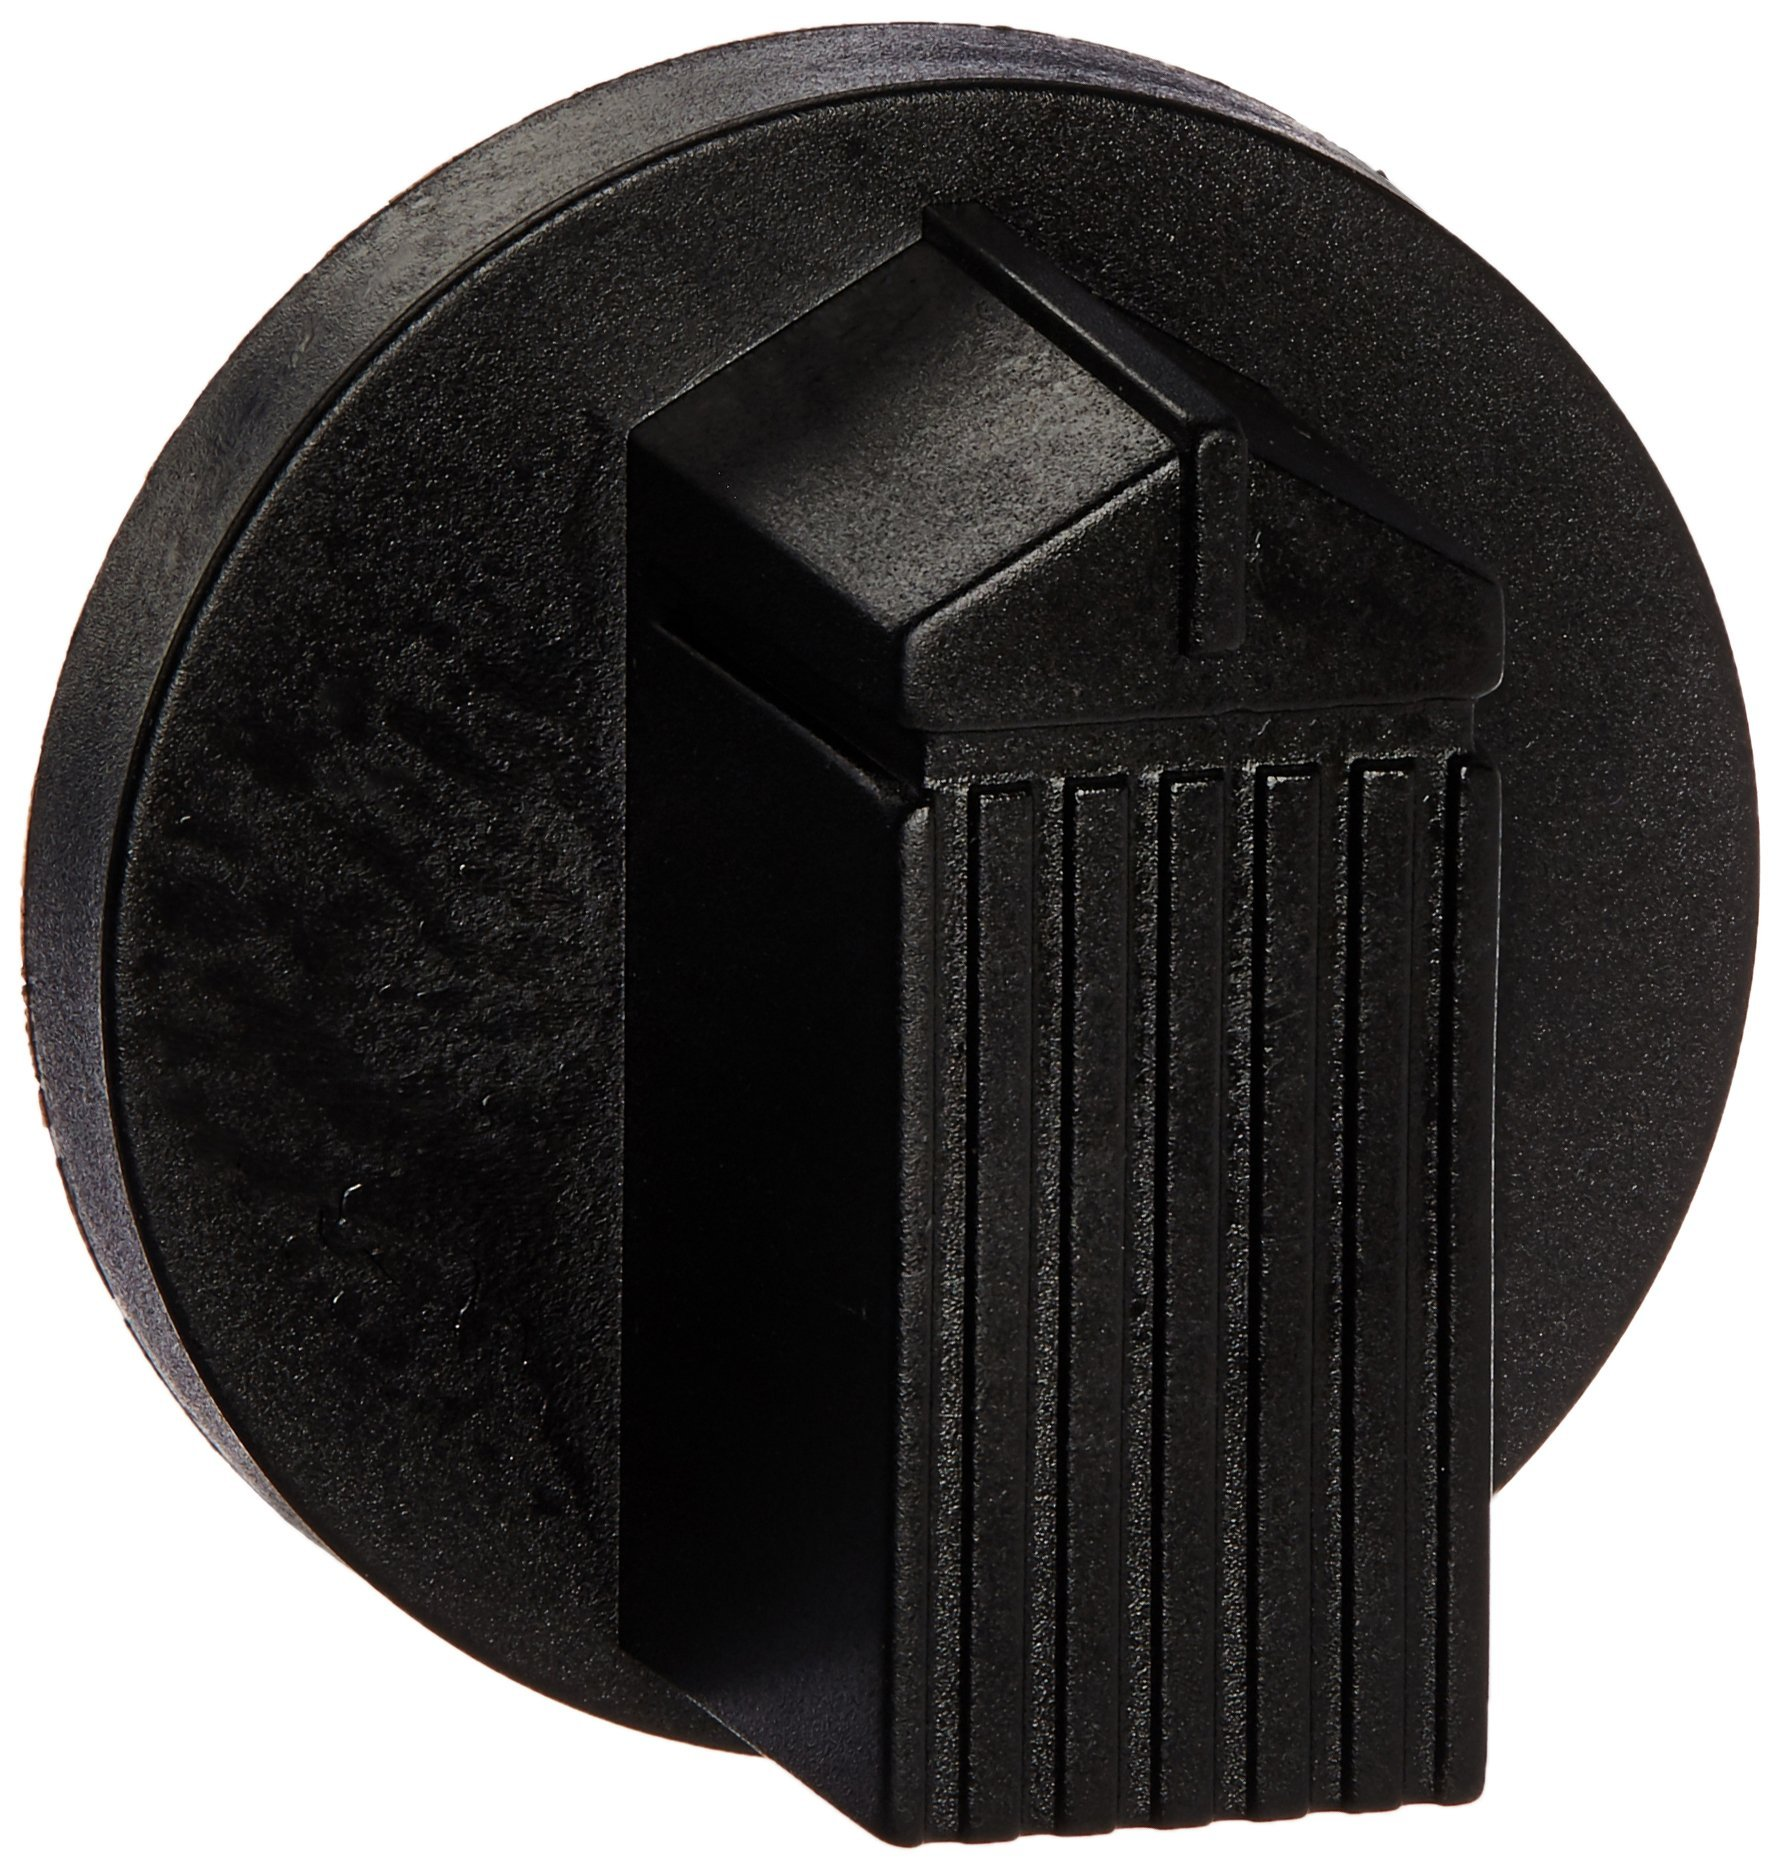 Music City Metals 02466 Plastic Control Knob Replacement for Select Gas Grill Models